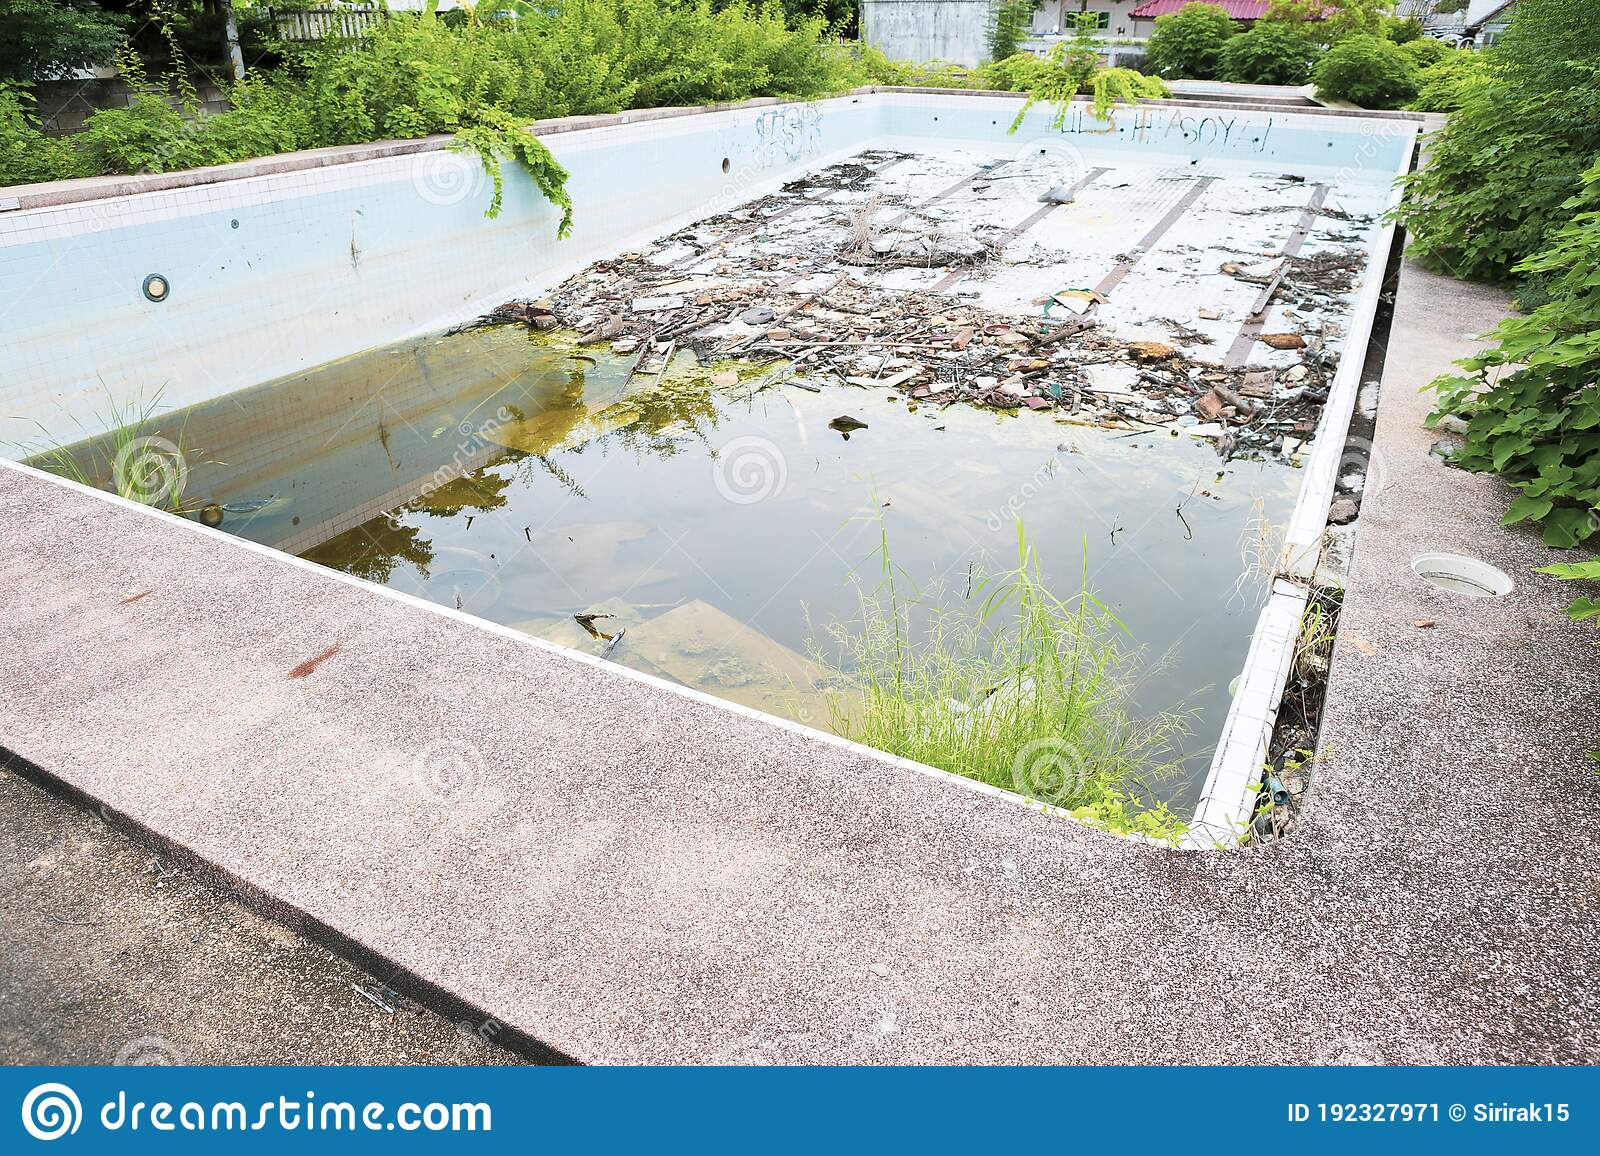 Abandoned Public Swimming Pool In Thailand Garbage In Dirty Water Pollution Stock Image Image Of Background Danger 192327971